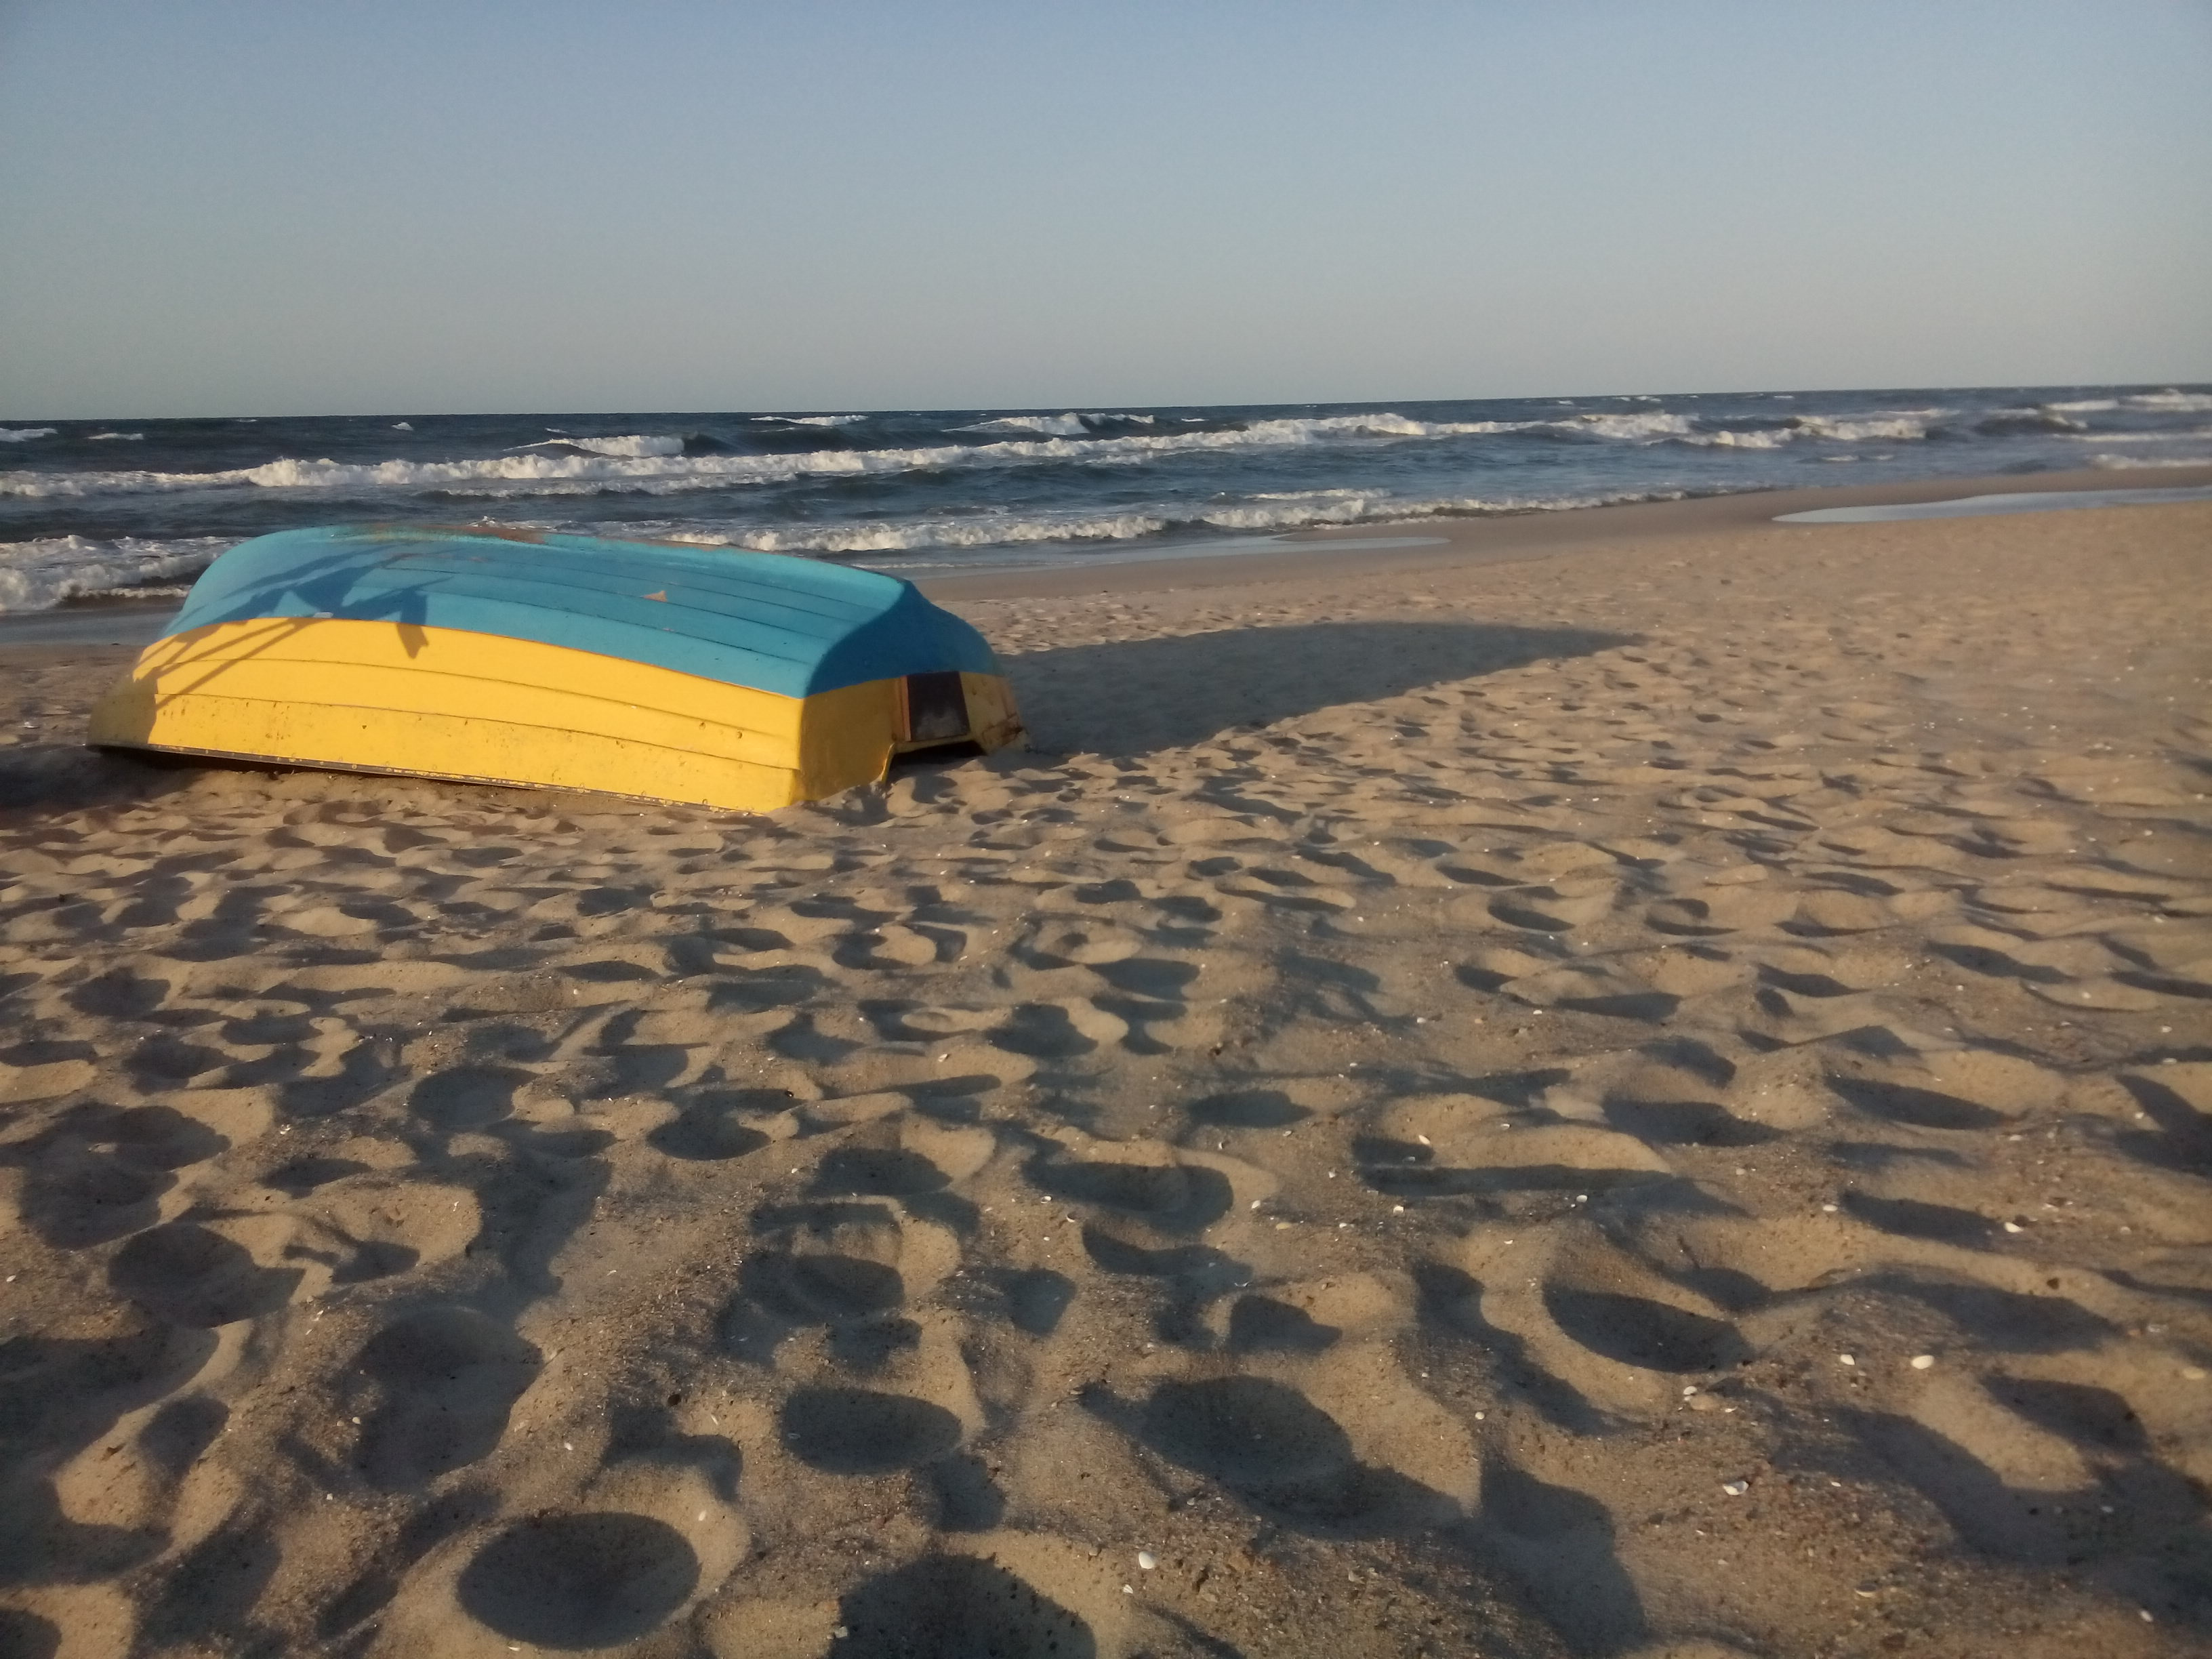 An upturned boat on a beach with rough sea in the background